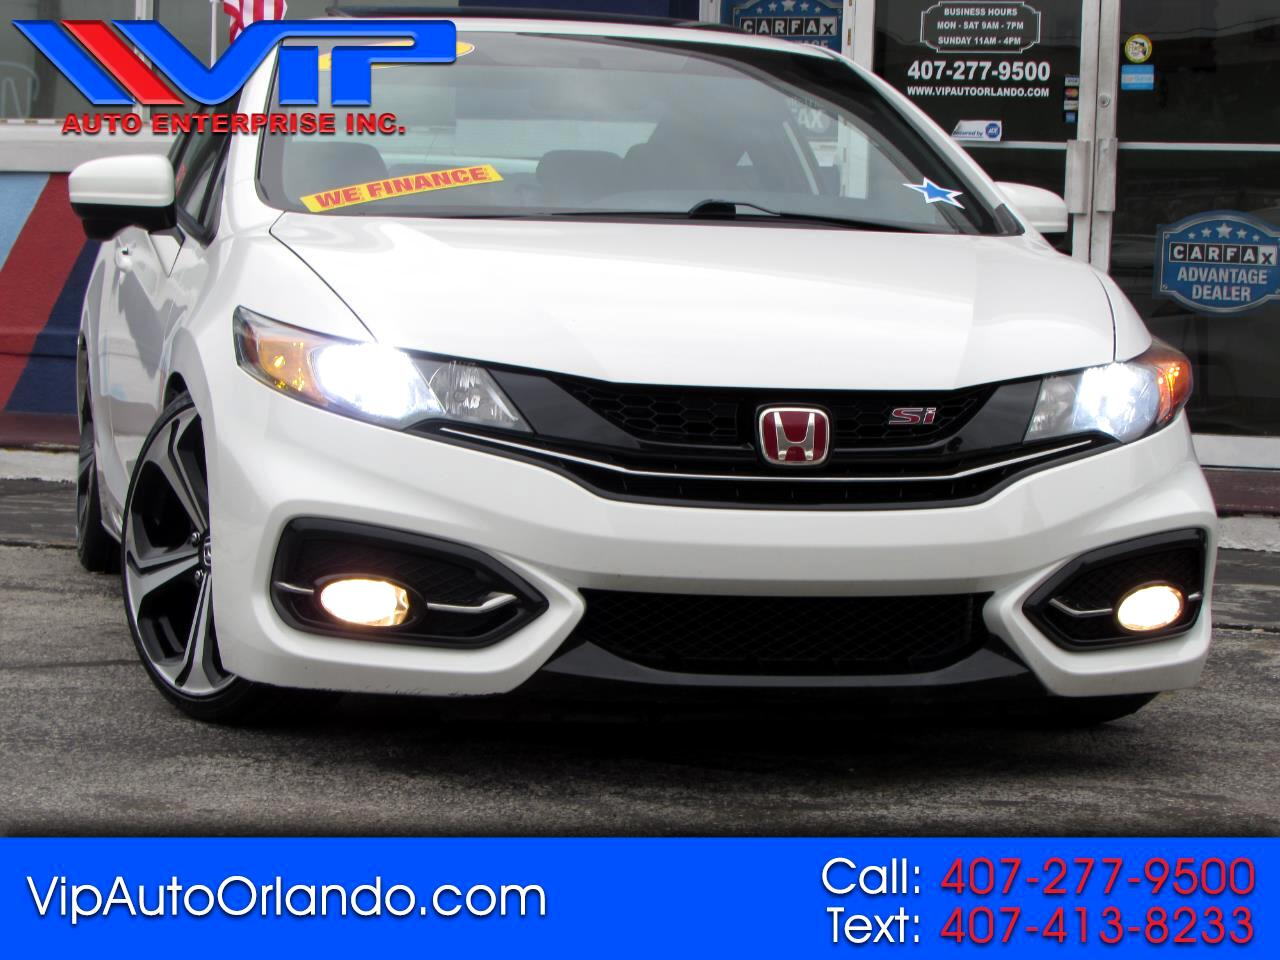 Honda Civic Coupe 2dr Man Si w/Summer Tires 2015